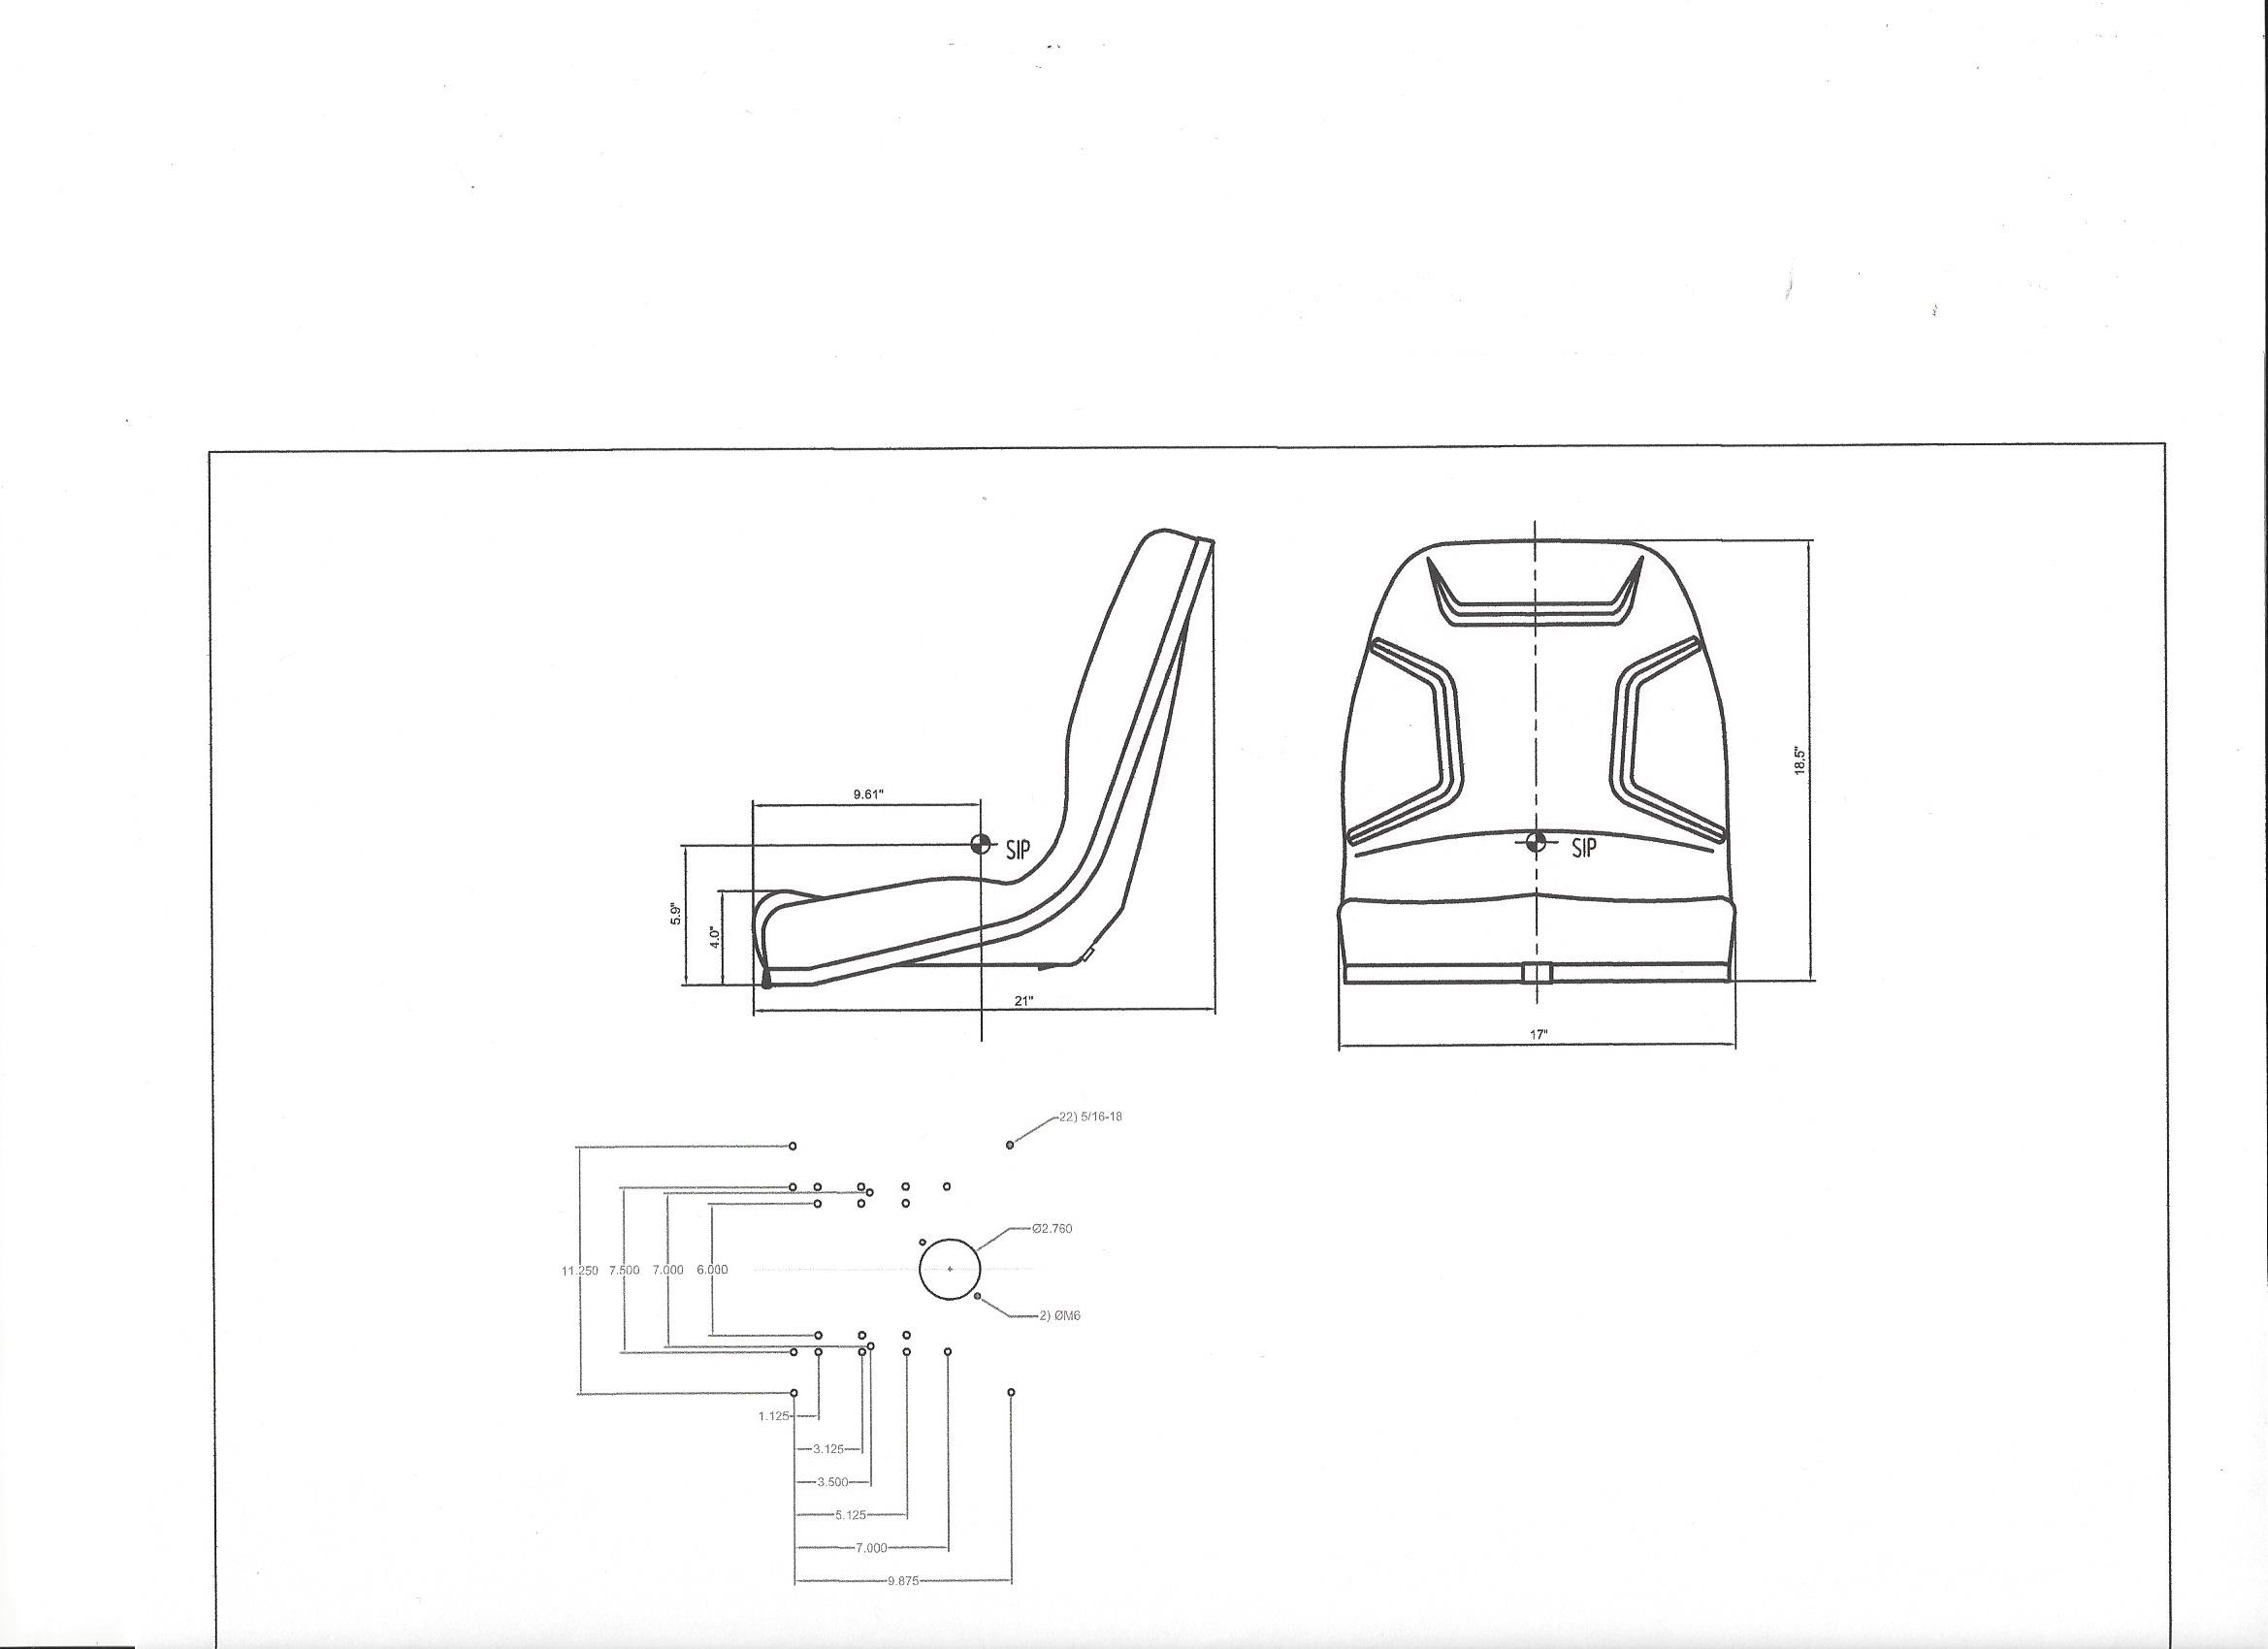 Kioti Engine Diagram